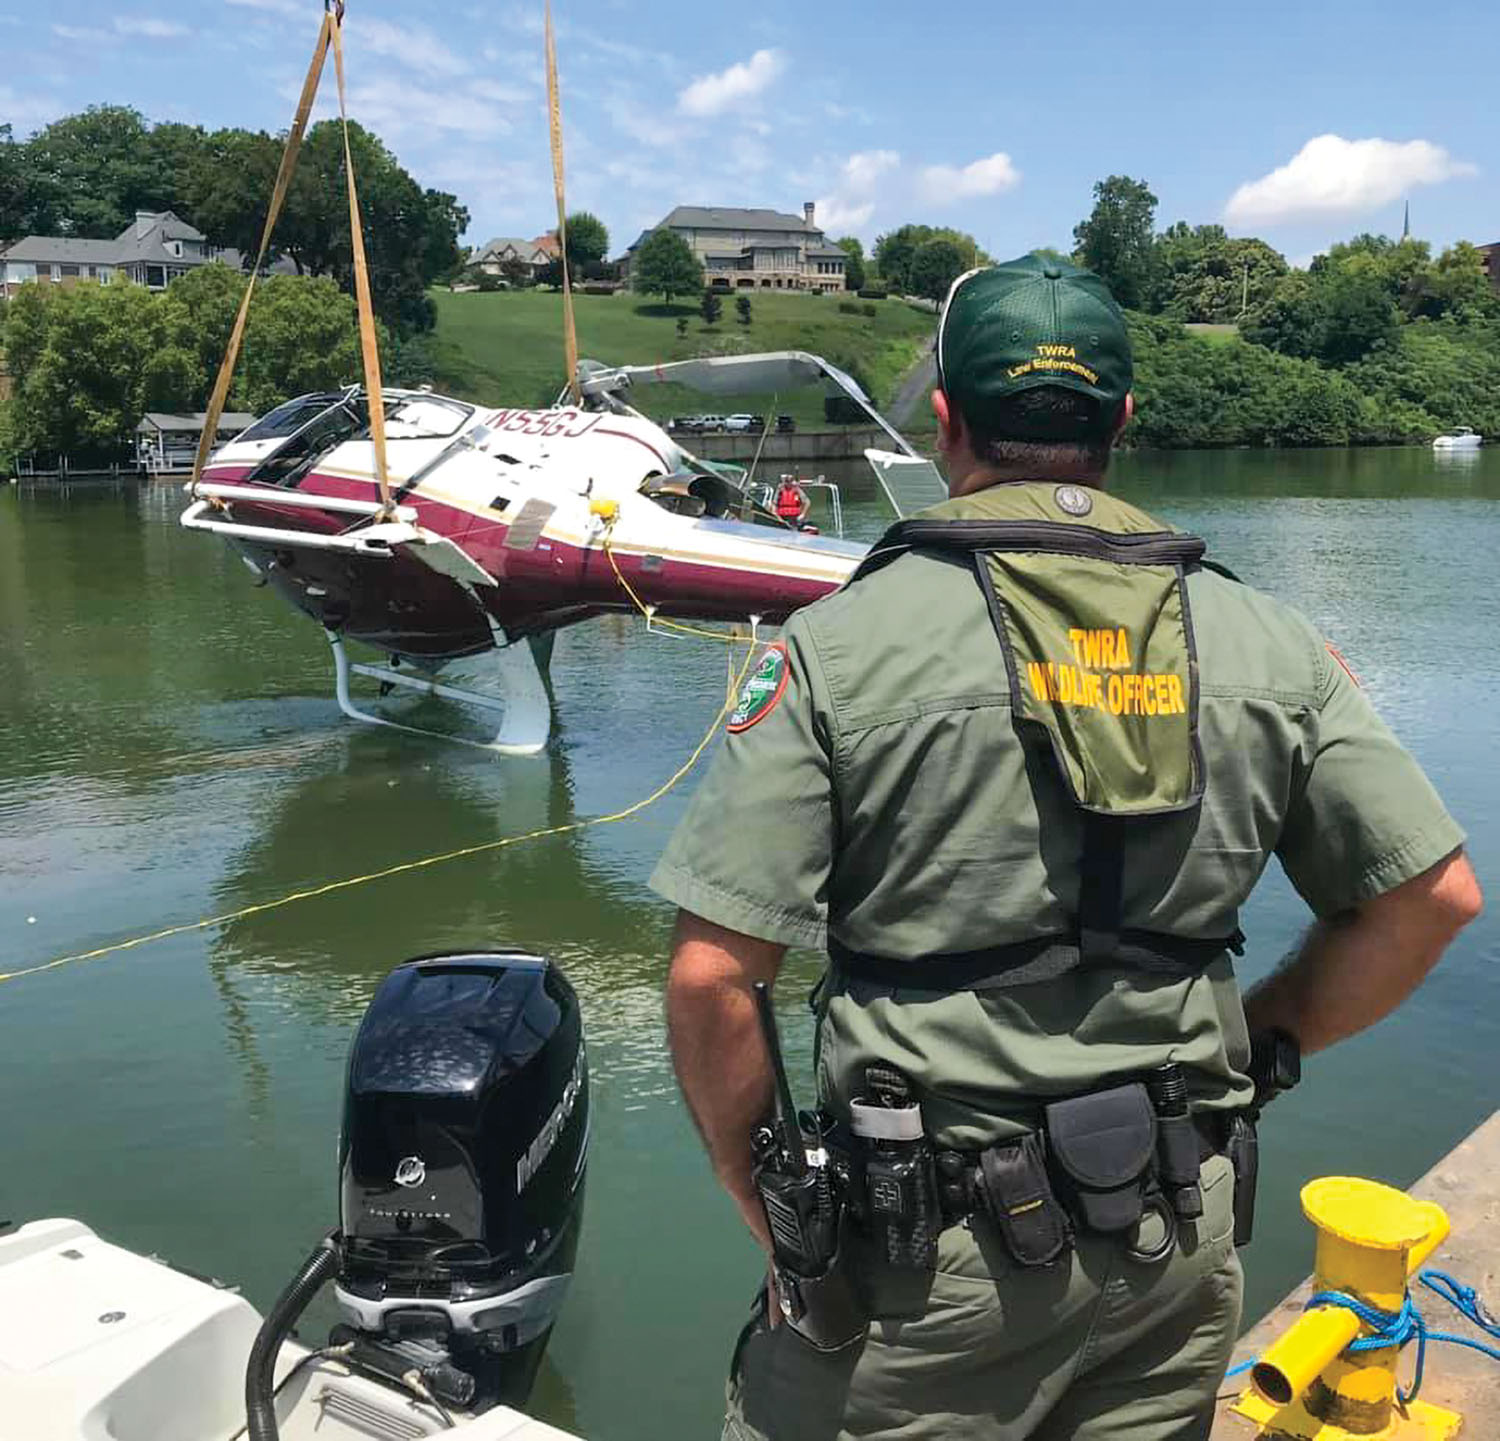 The Tennessee Wildlife Resources Agency assisted the Federal Aviation Administration in the recovery of the helicopter August 5 that crashed into Fort Loudon Lake, a reservoir of the Tennessee River. The August 3 crash killed Joe Clayton, co-founder of Clayton Automobiles and Clayton Homes. (Photo courtesy of Tennessee Wildlife Resources Agency)